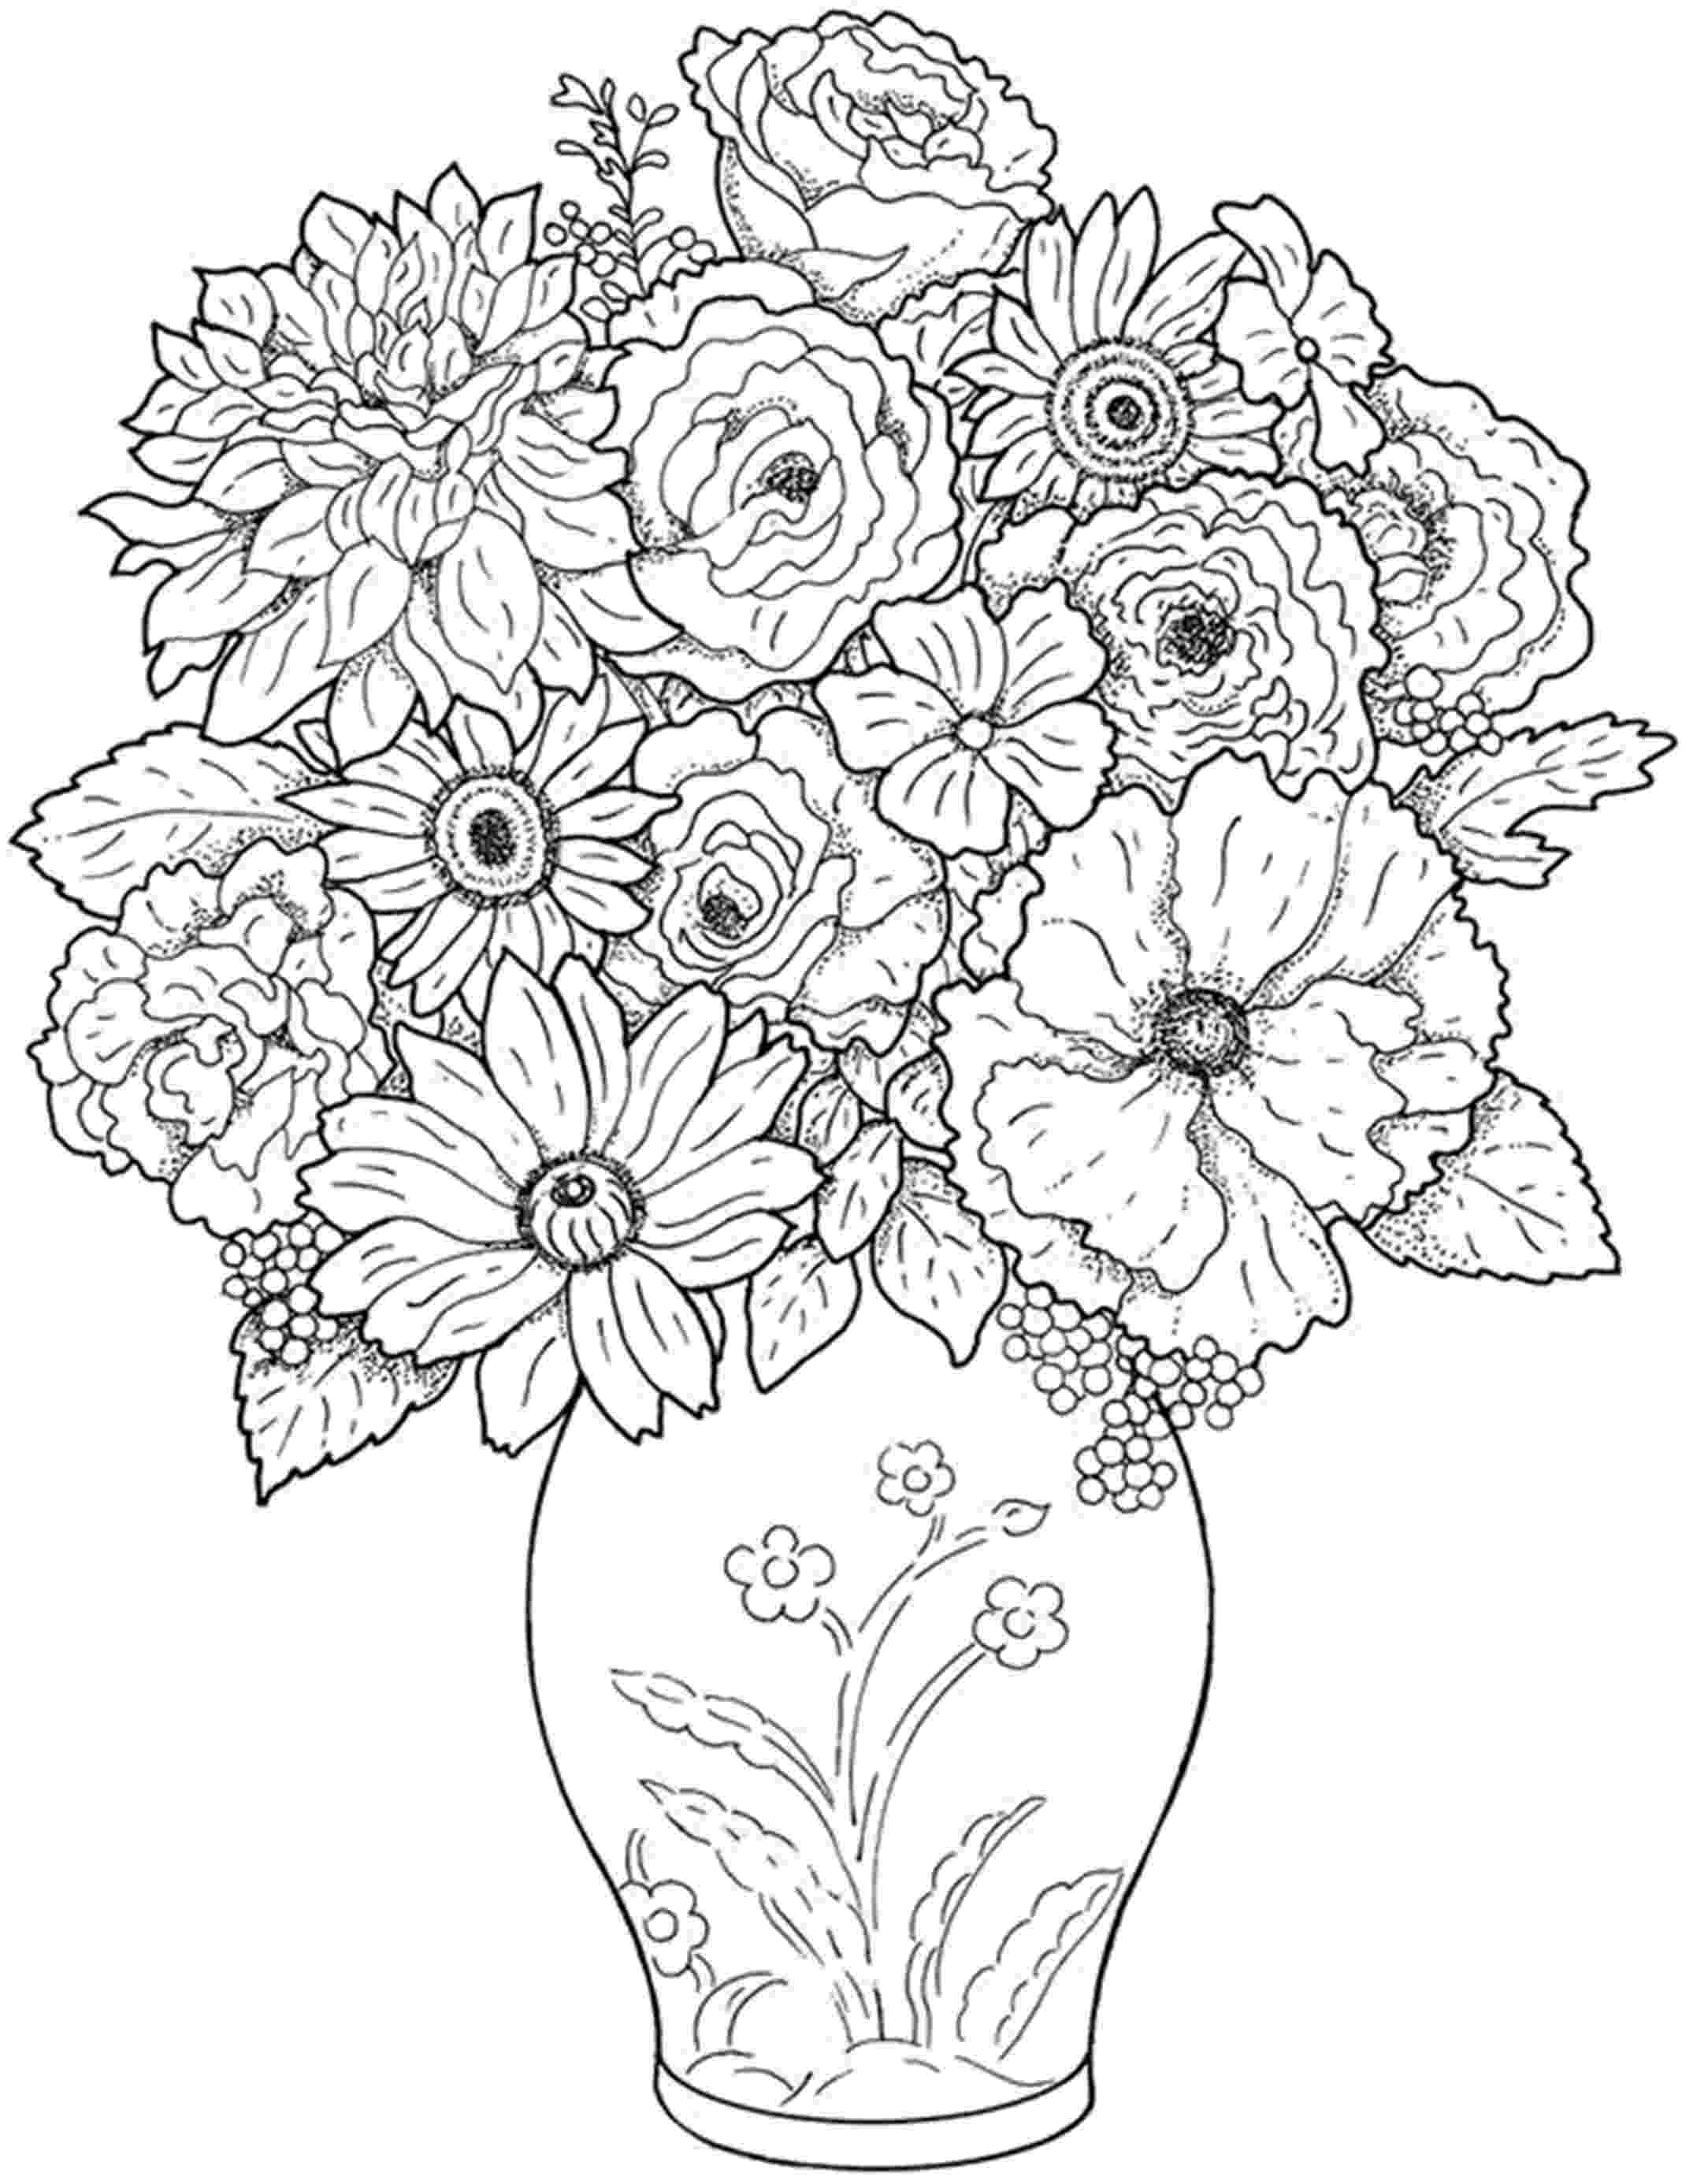 coloring page of flower free printable flower coloring pages for kids best of flower coloring page